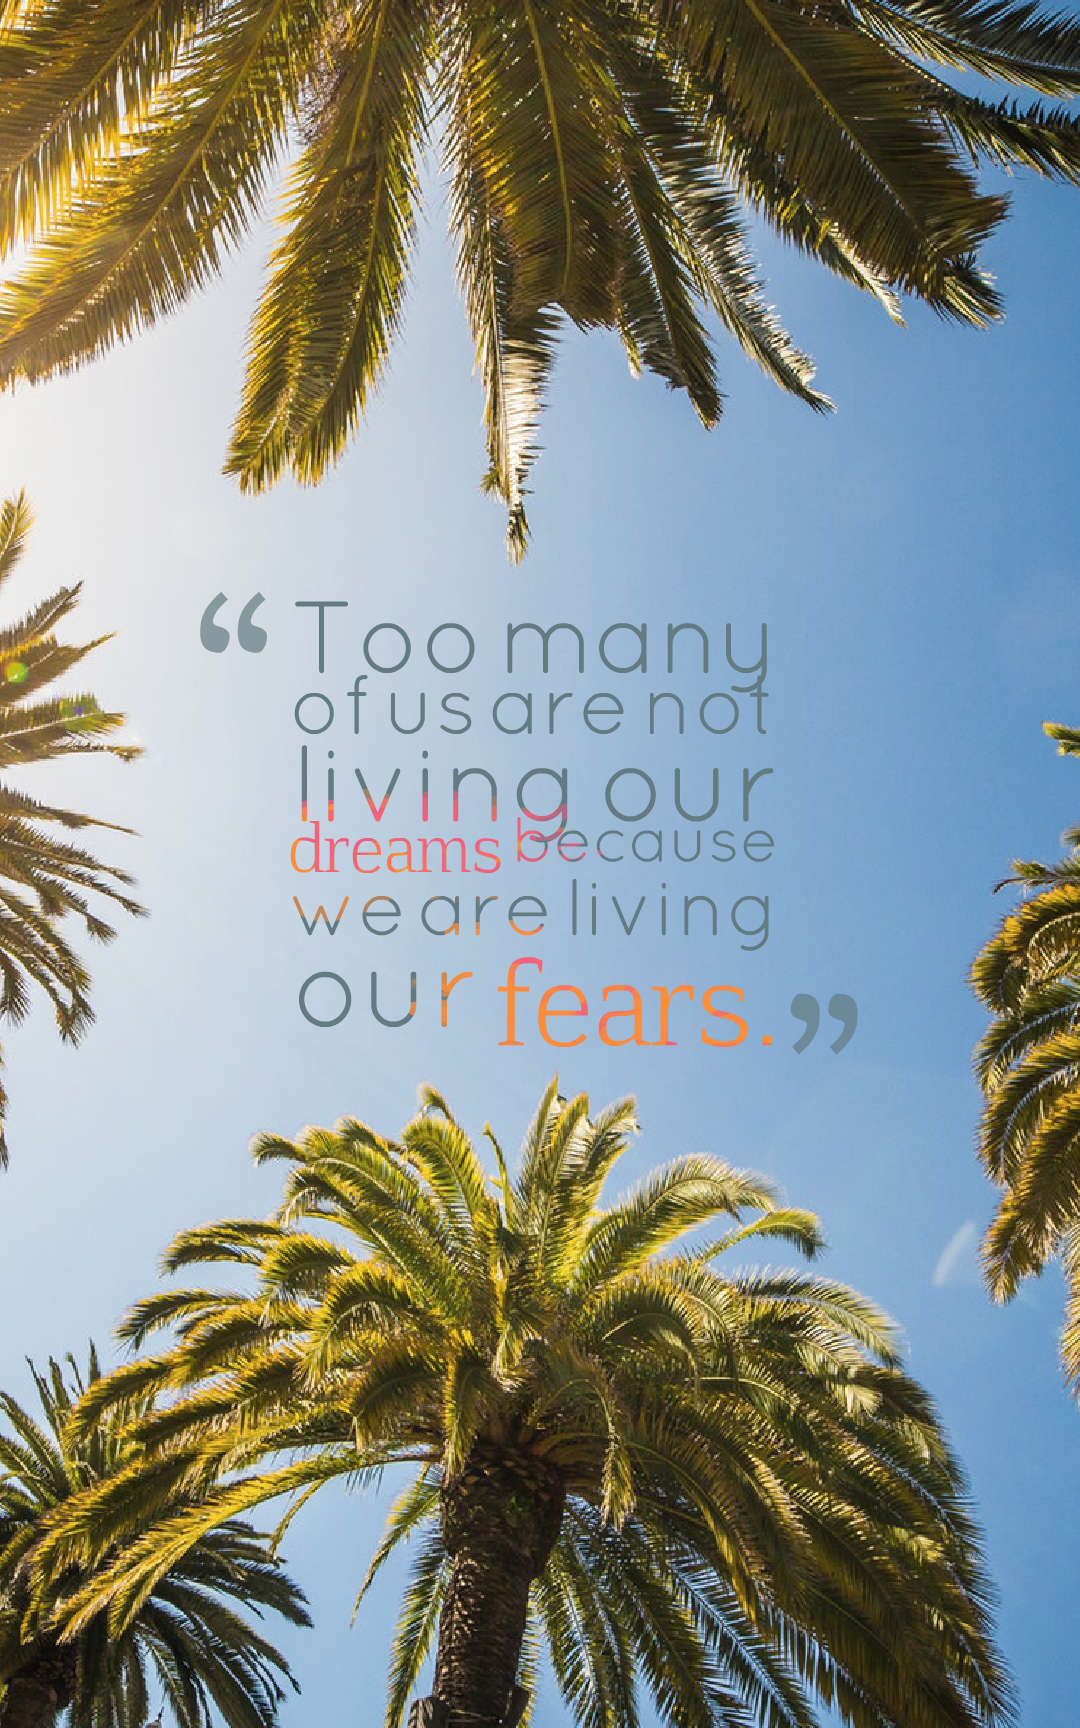 Quotes image of Too many of us are not living our dreams because we are living our fears.